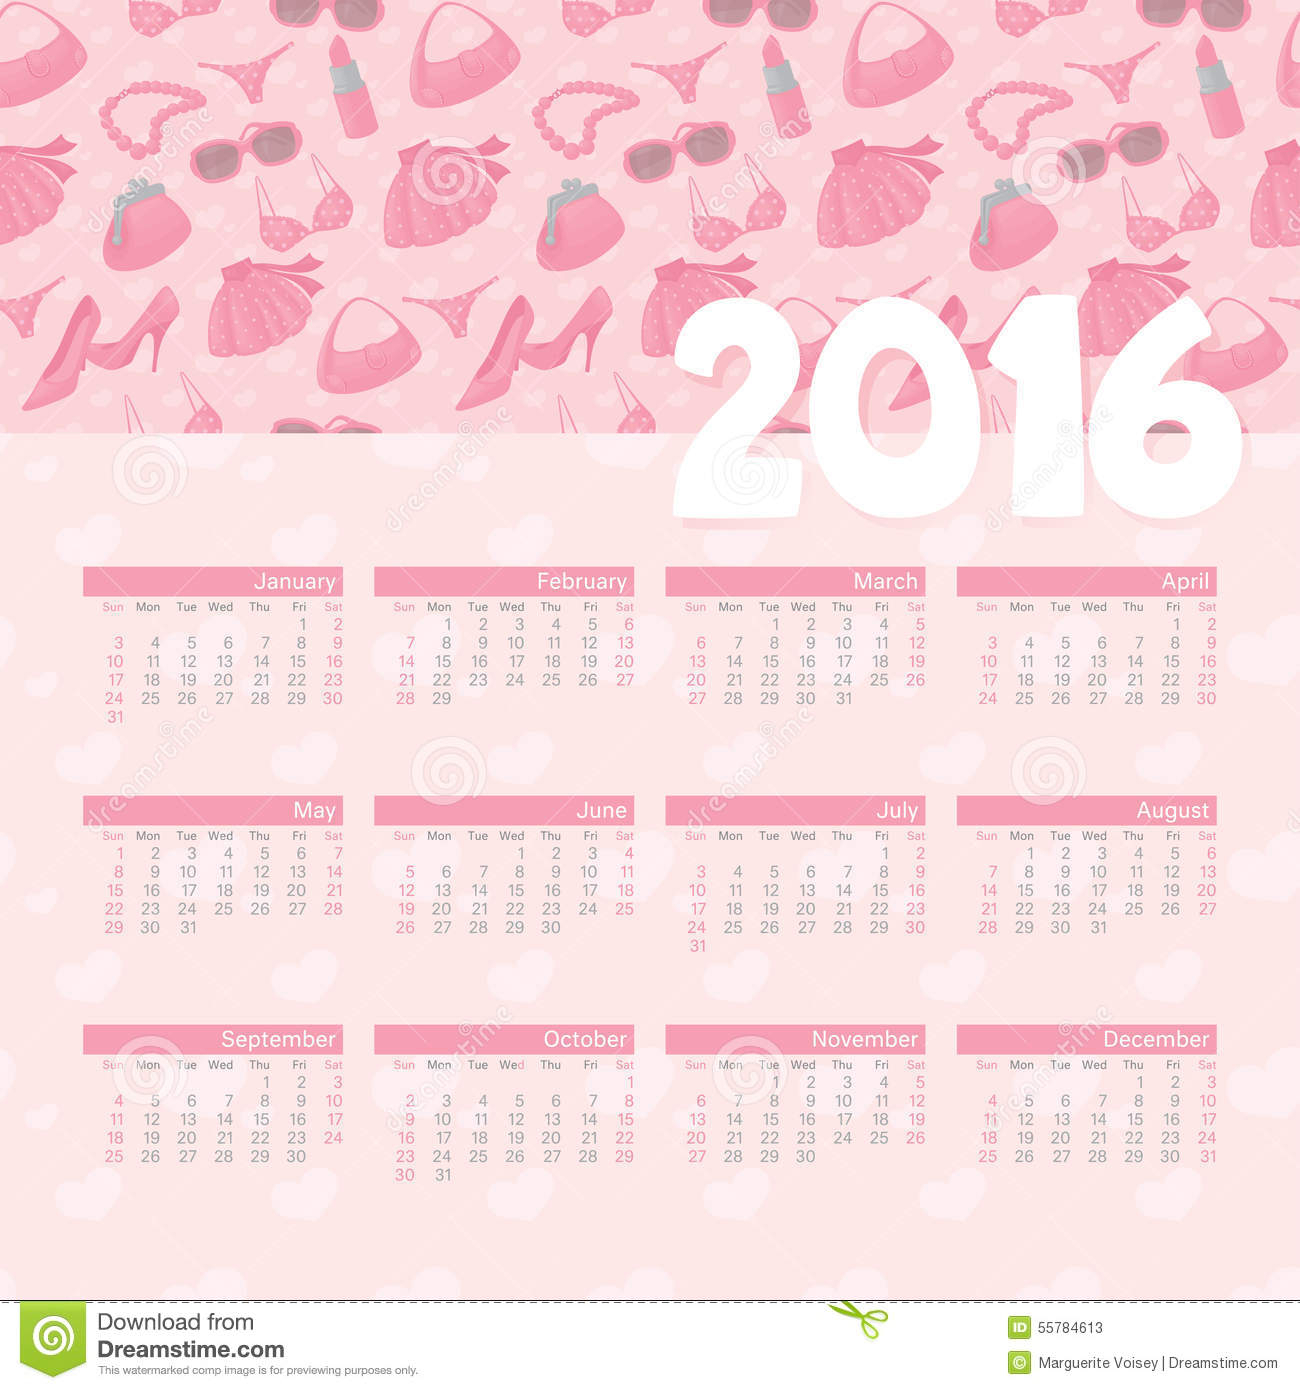 Year Calendar Girly Stock Illustration. Illustration Of with regard to Girly Calewnder Of The Year